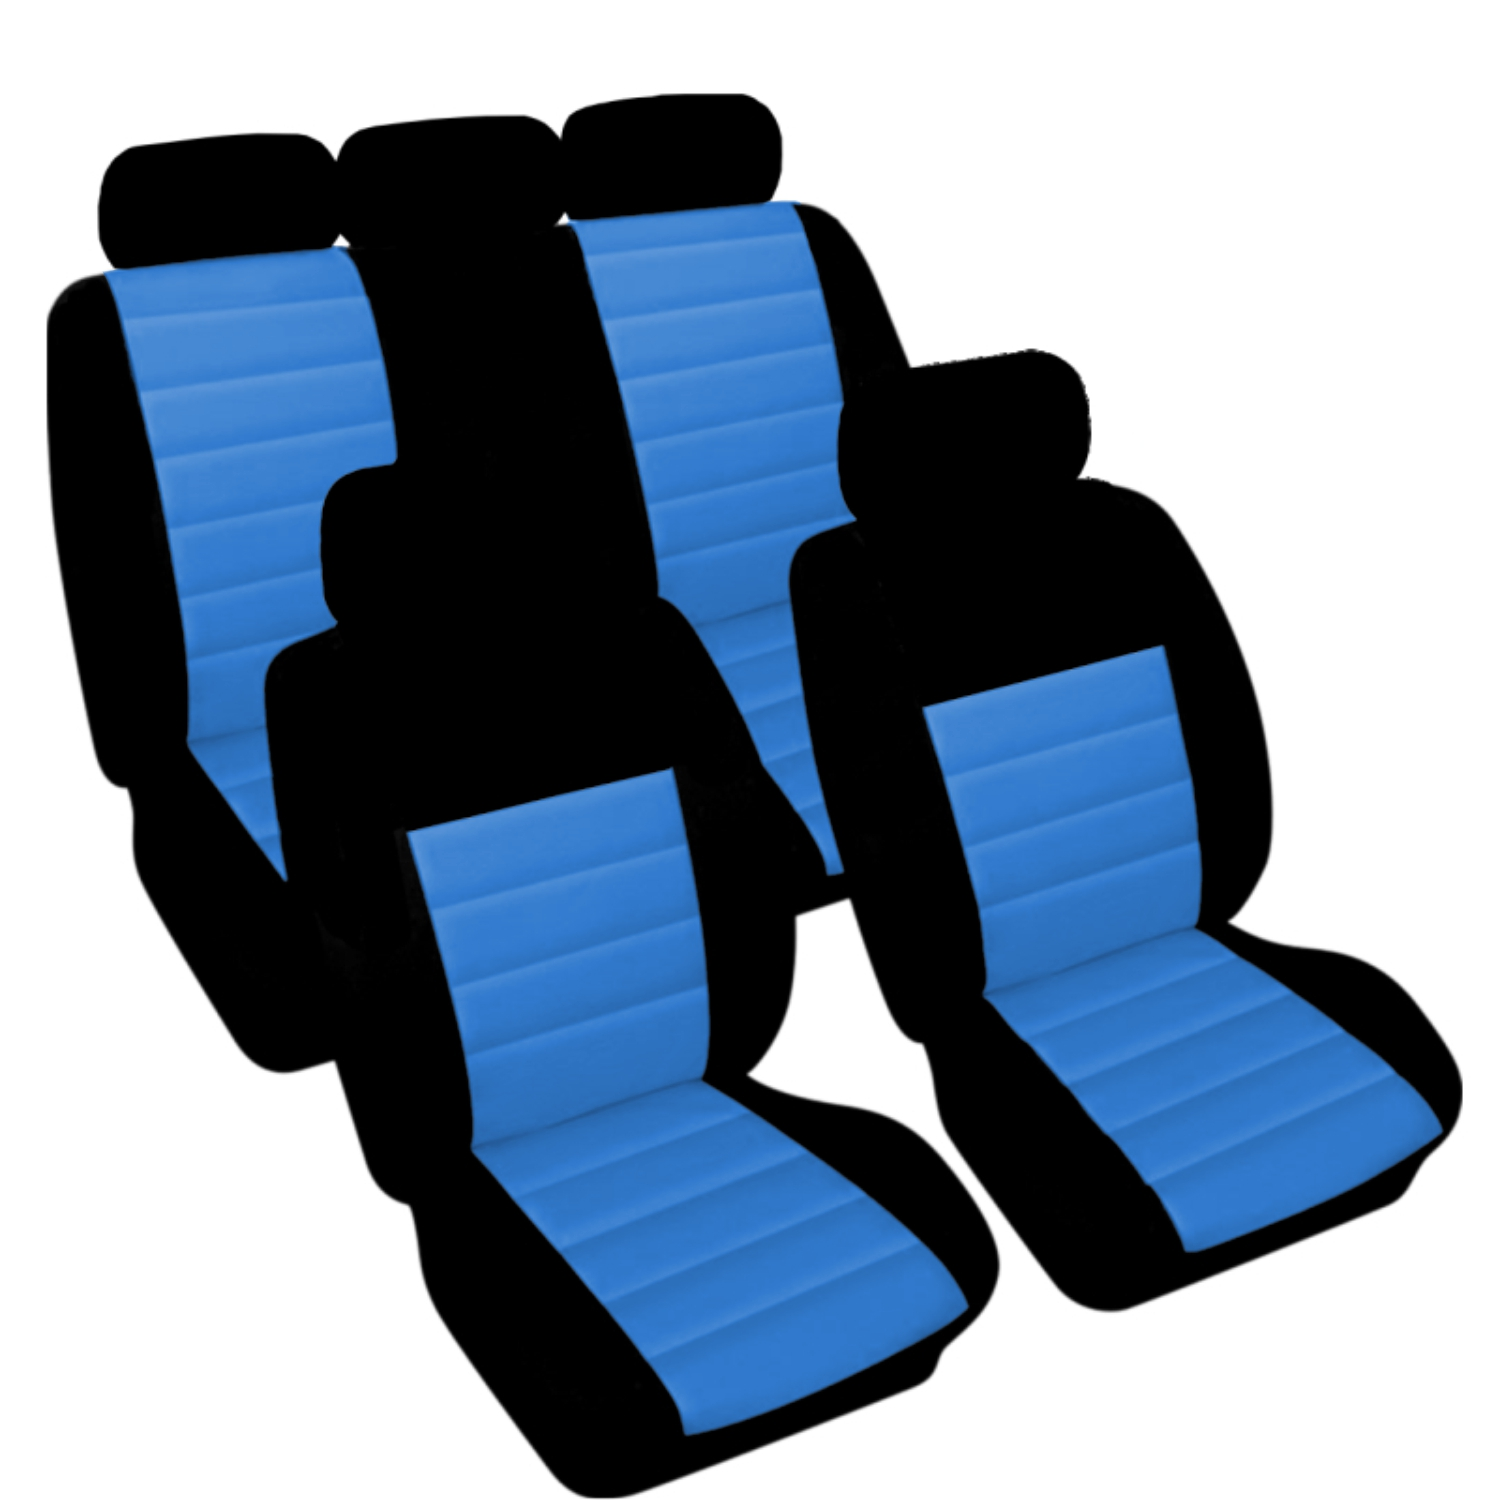 SB403 - Car Seat Cover set protector with SIDE AIRBAG BLACK / BLUE